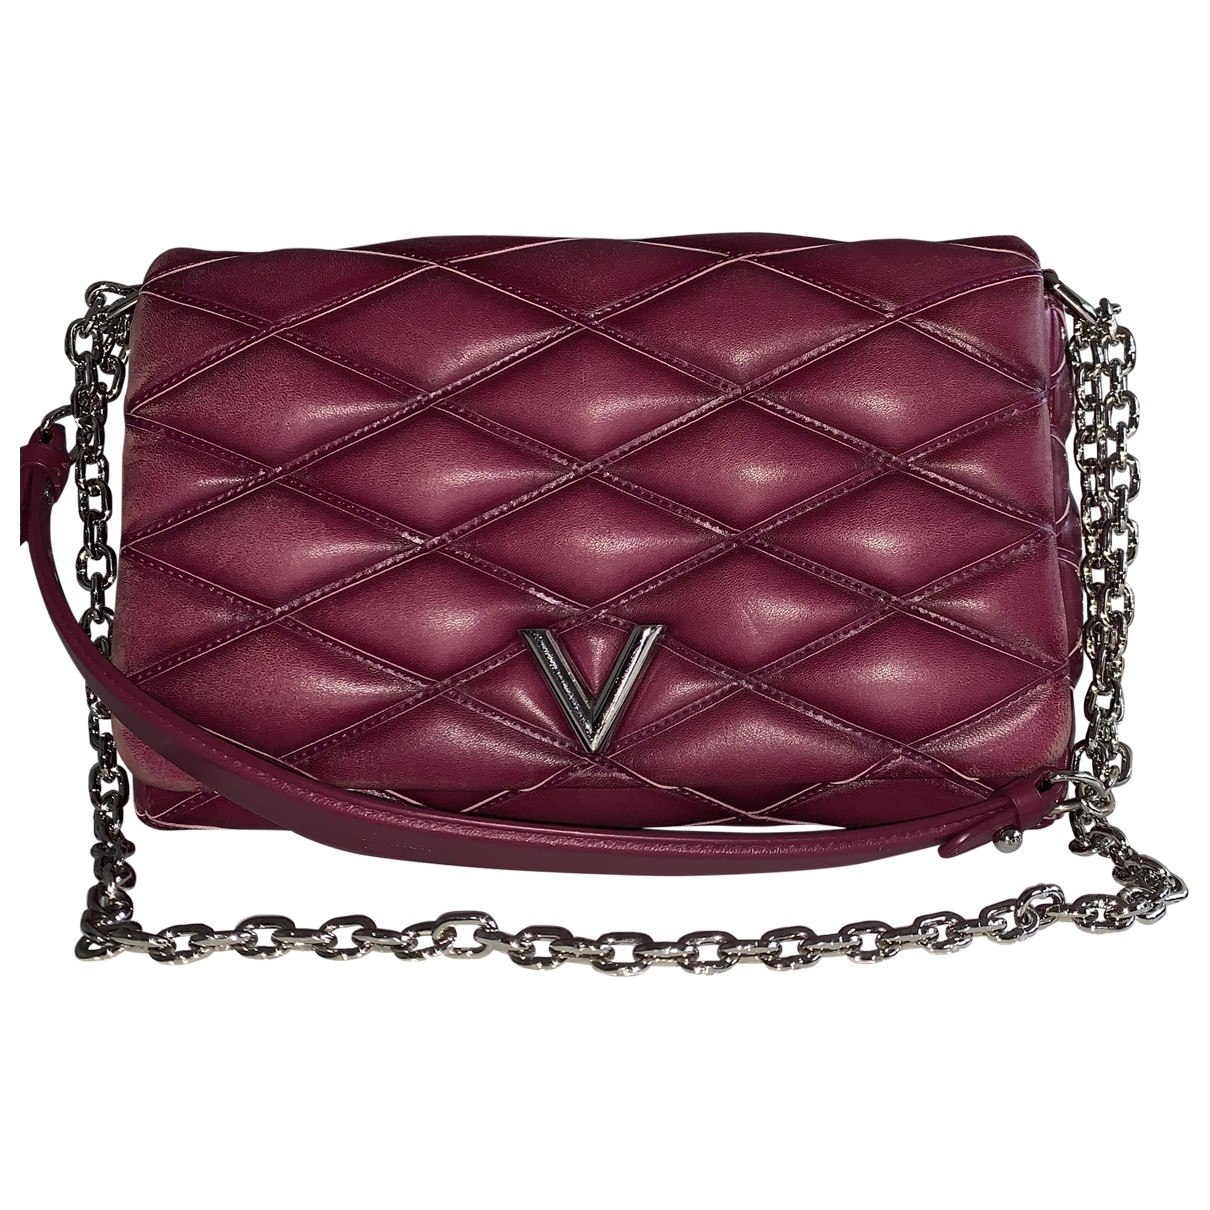 Louis Vuitton GO 14 Handtasche in  Rosa Leder